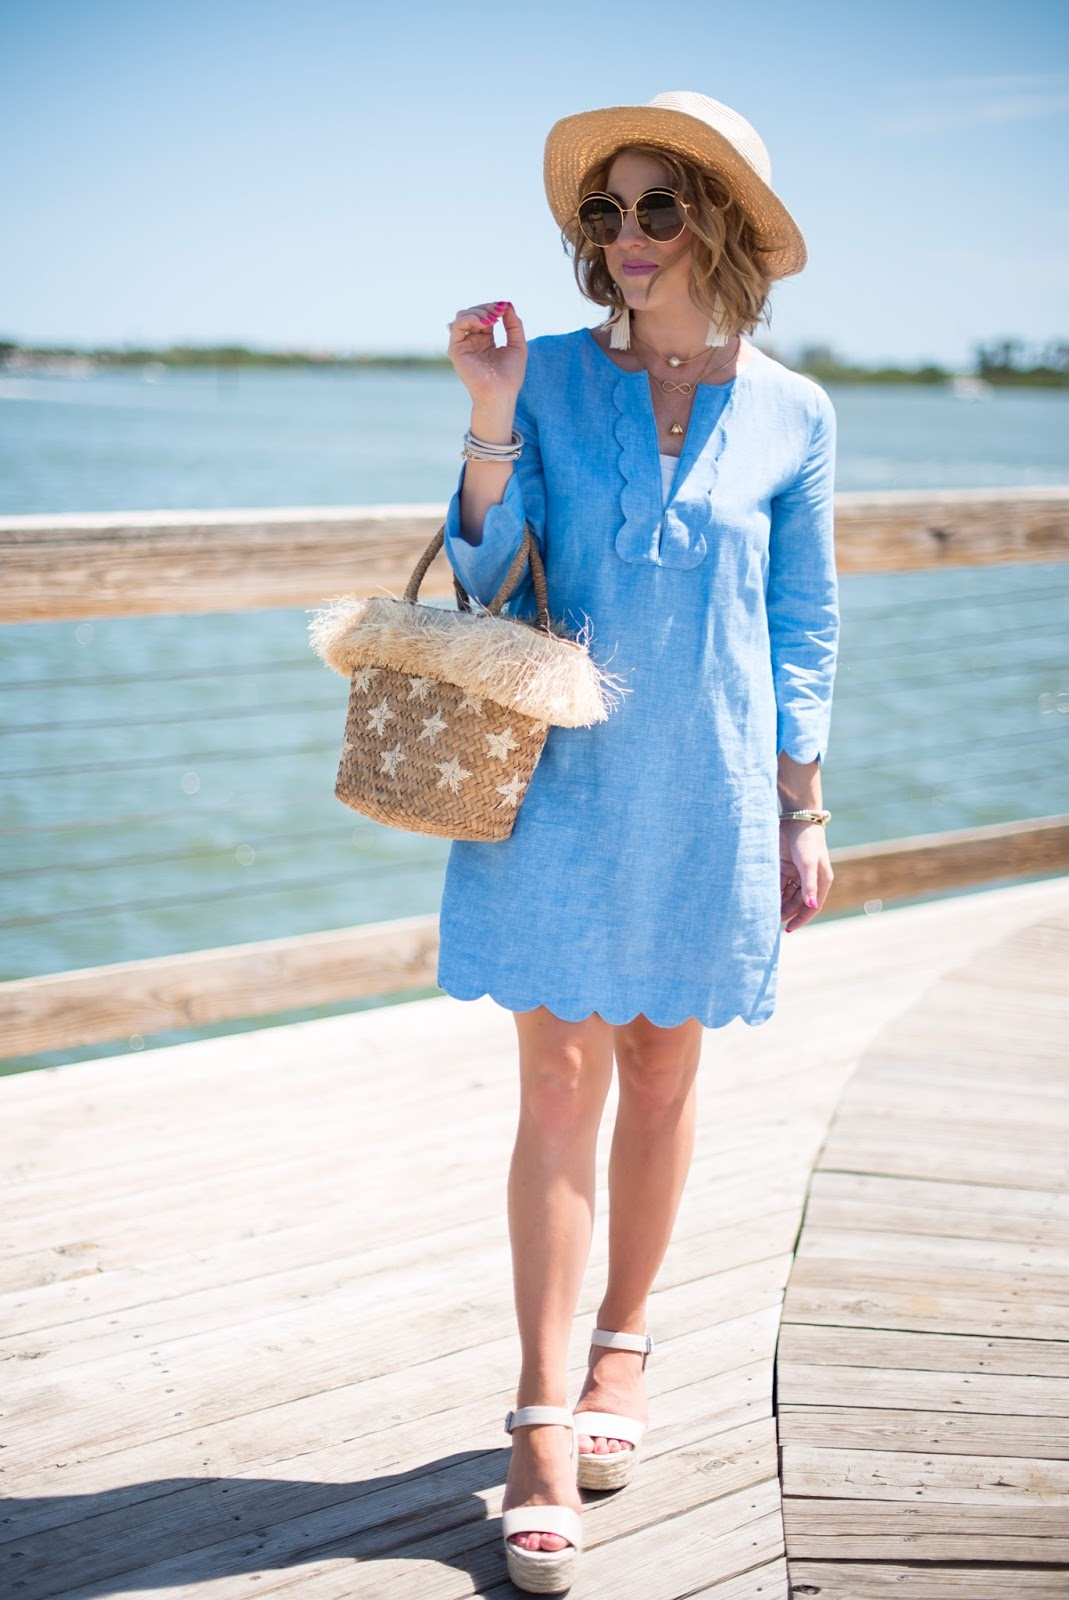 J.Crew Scallop Tunic - Click through to see more on Something Delightful Blog!